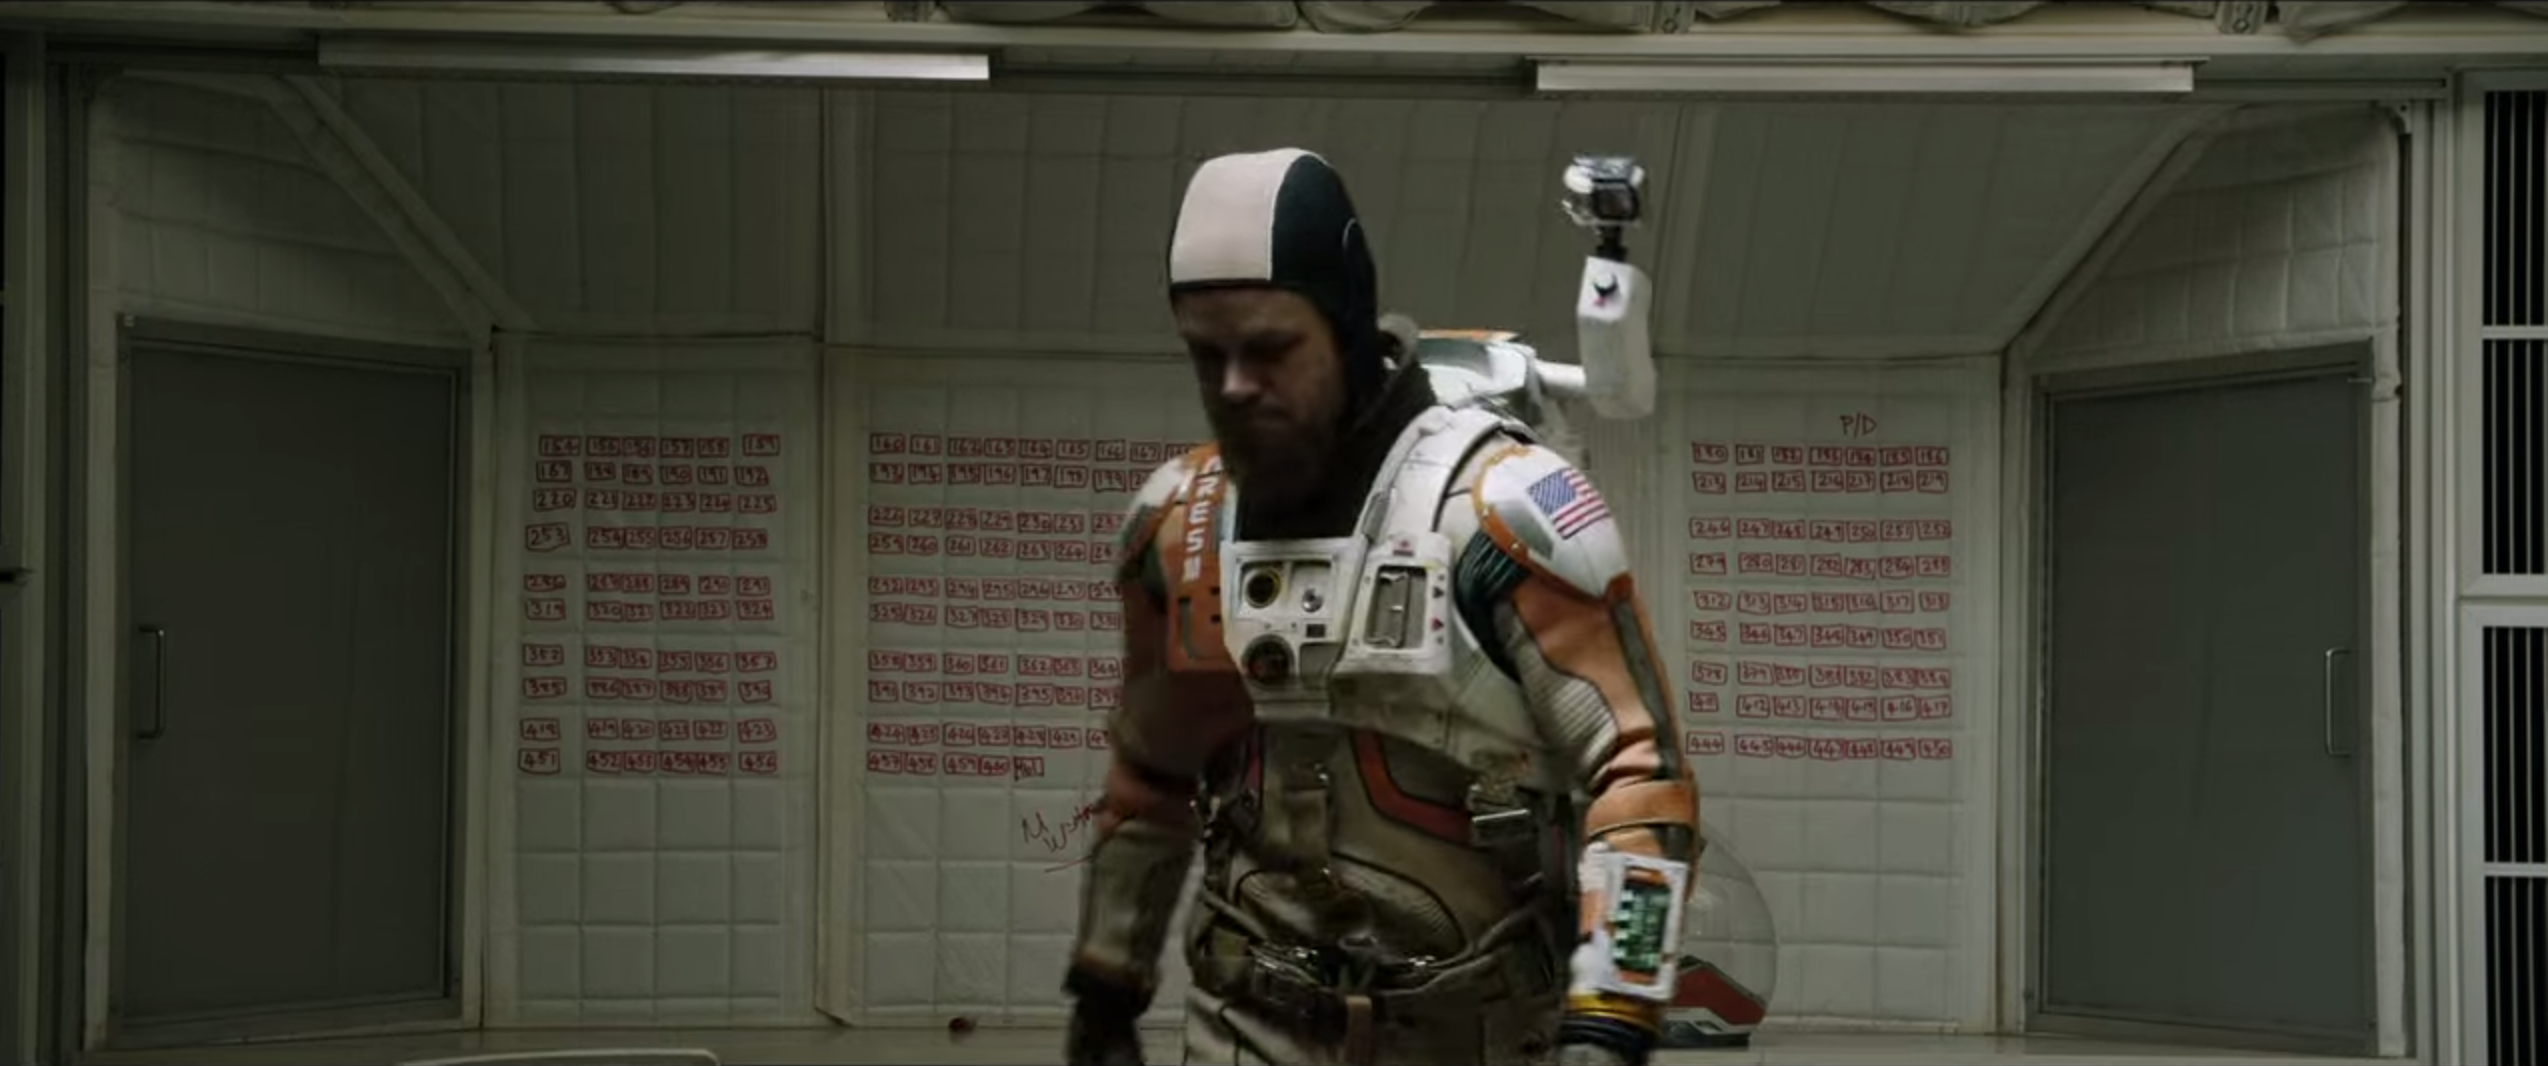 Watch : Trailer of Ridley Scott's 'The Martian' Starring Matt Damon